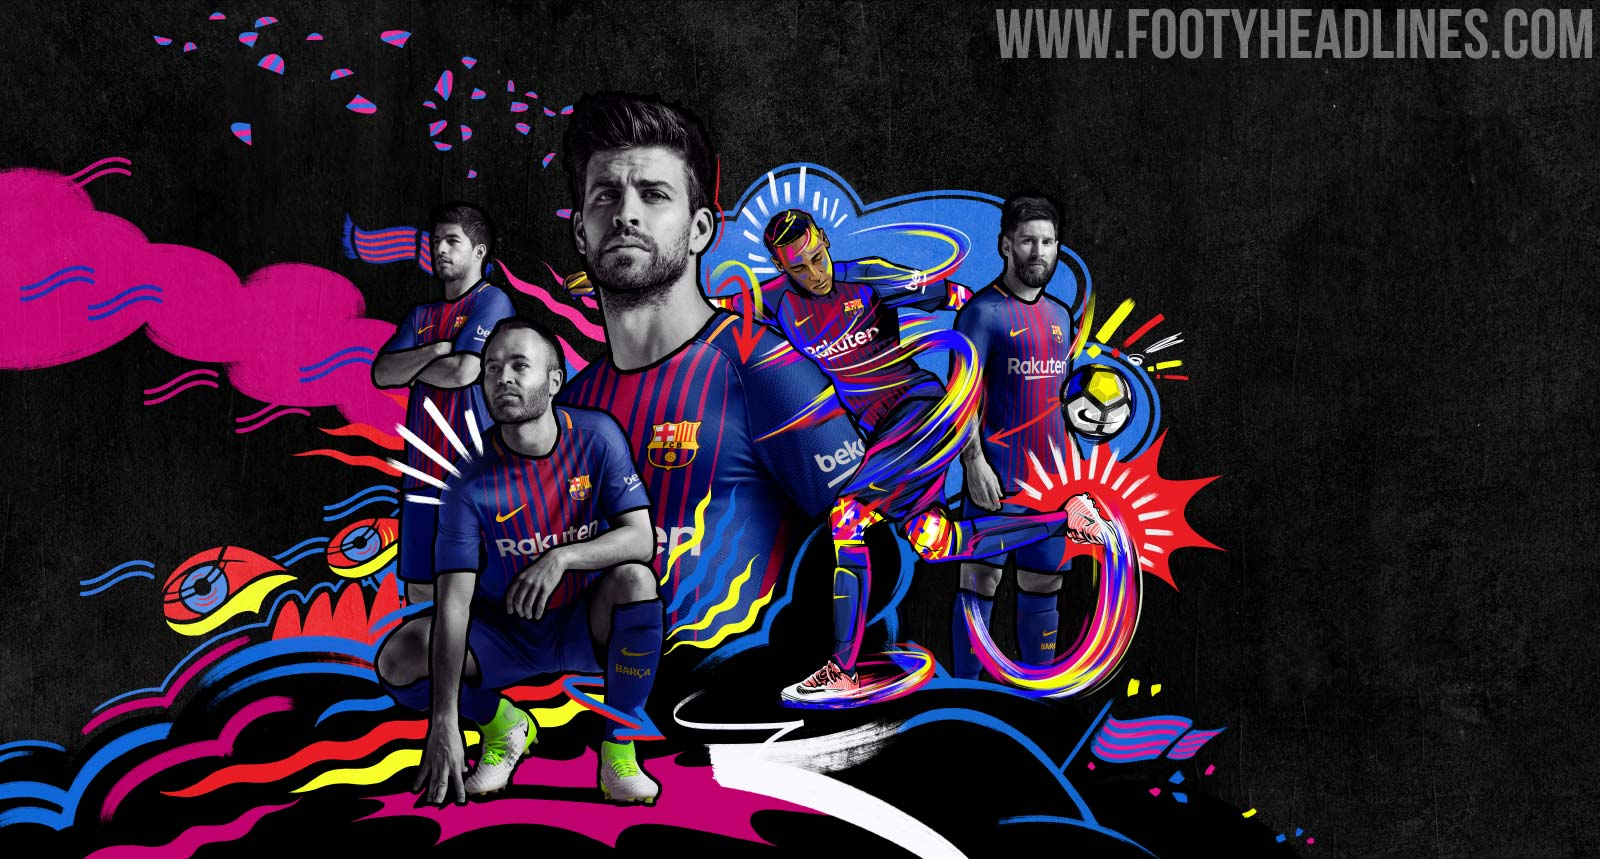 Barcelona 17 18 Home Kit Released   Footy Headlines 1600x859